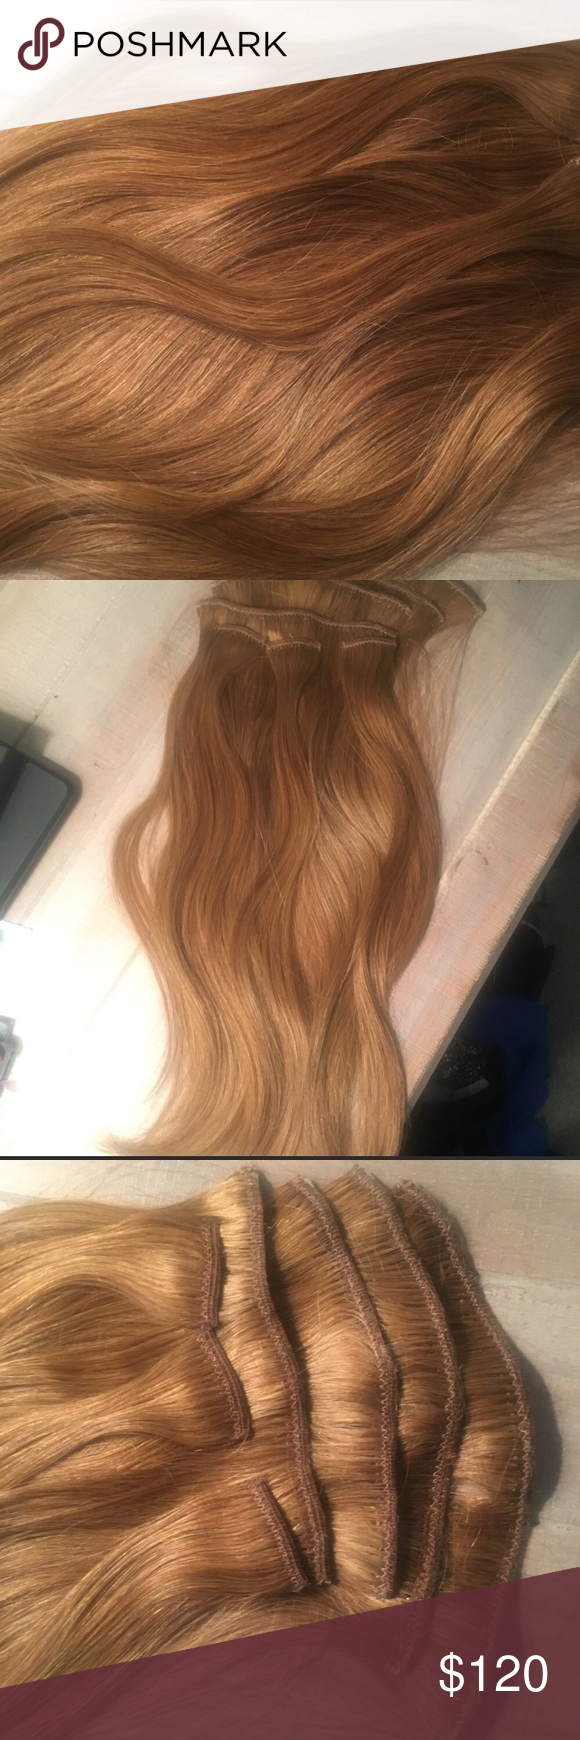 New Euronext 18 Inch Extensions From Sallys These Are Very High